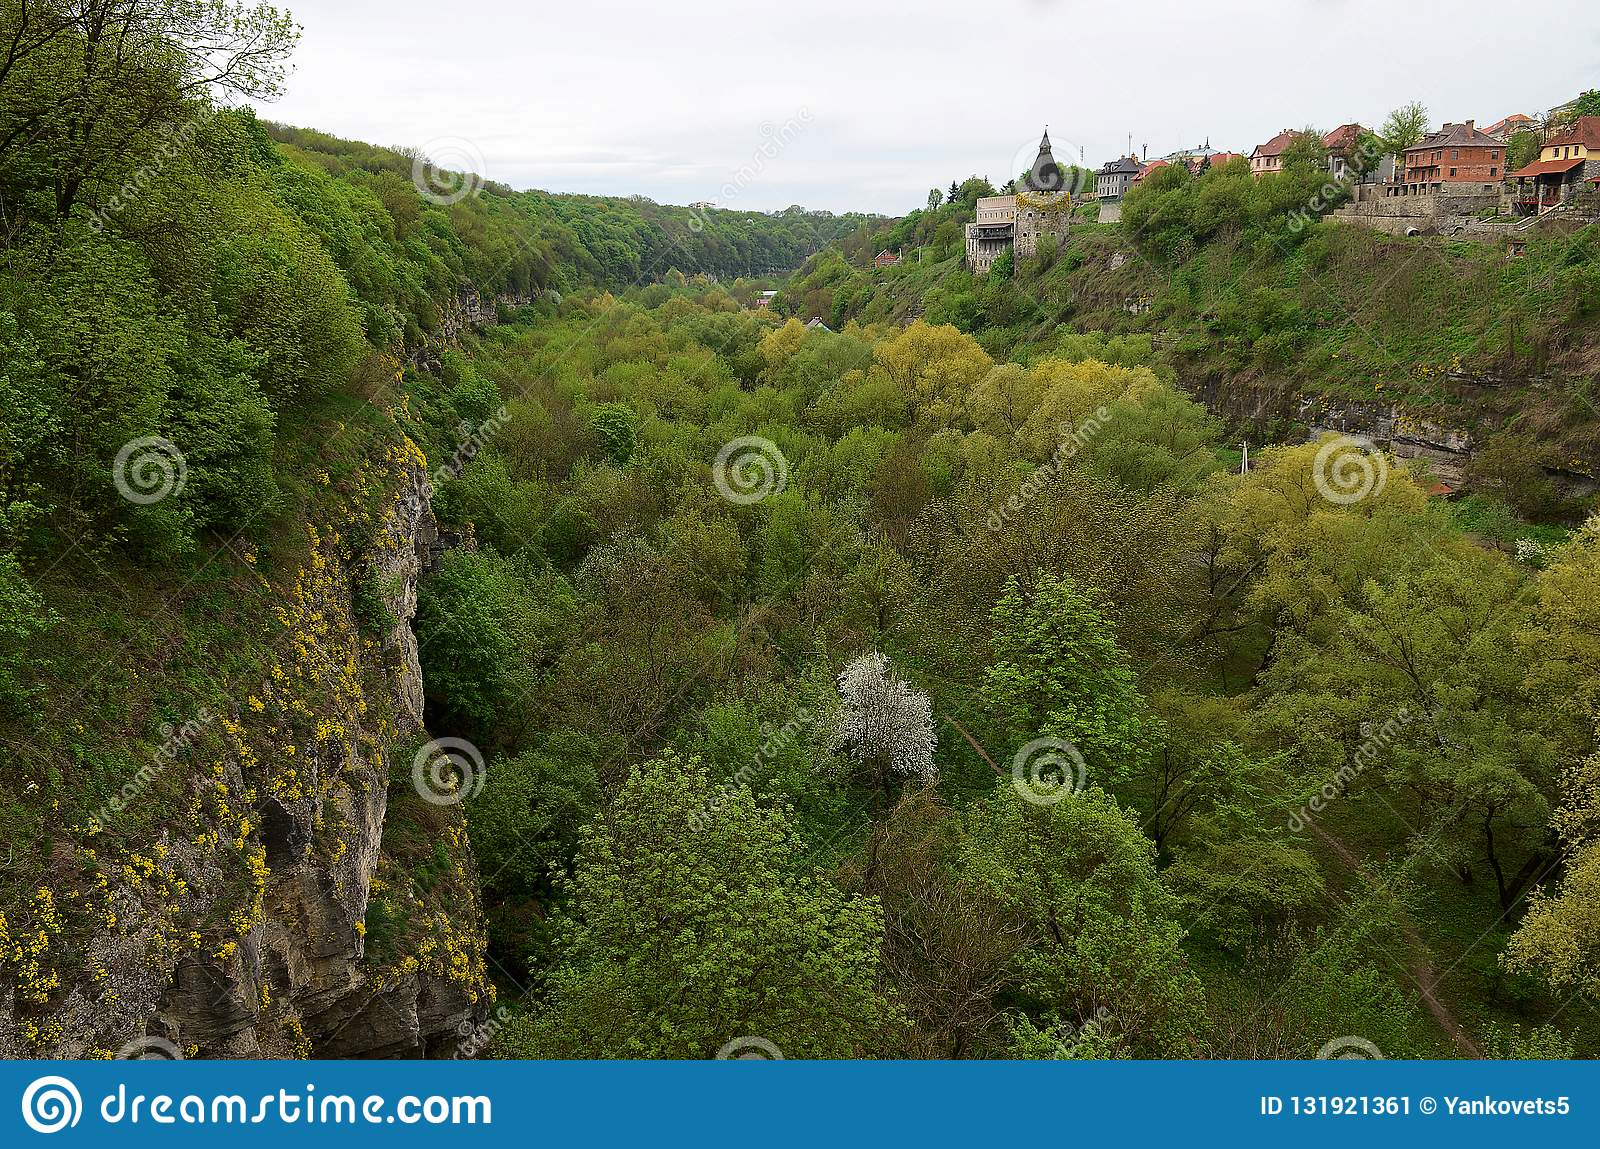 The steep stone walls of the old fortress are covered with yellow flowers and green trees against the background of the